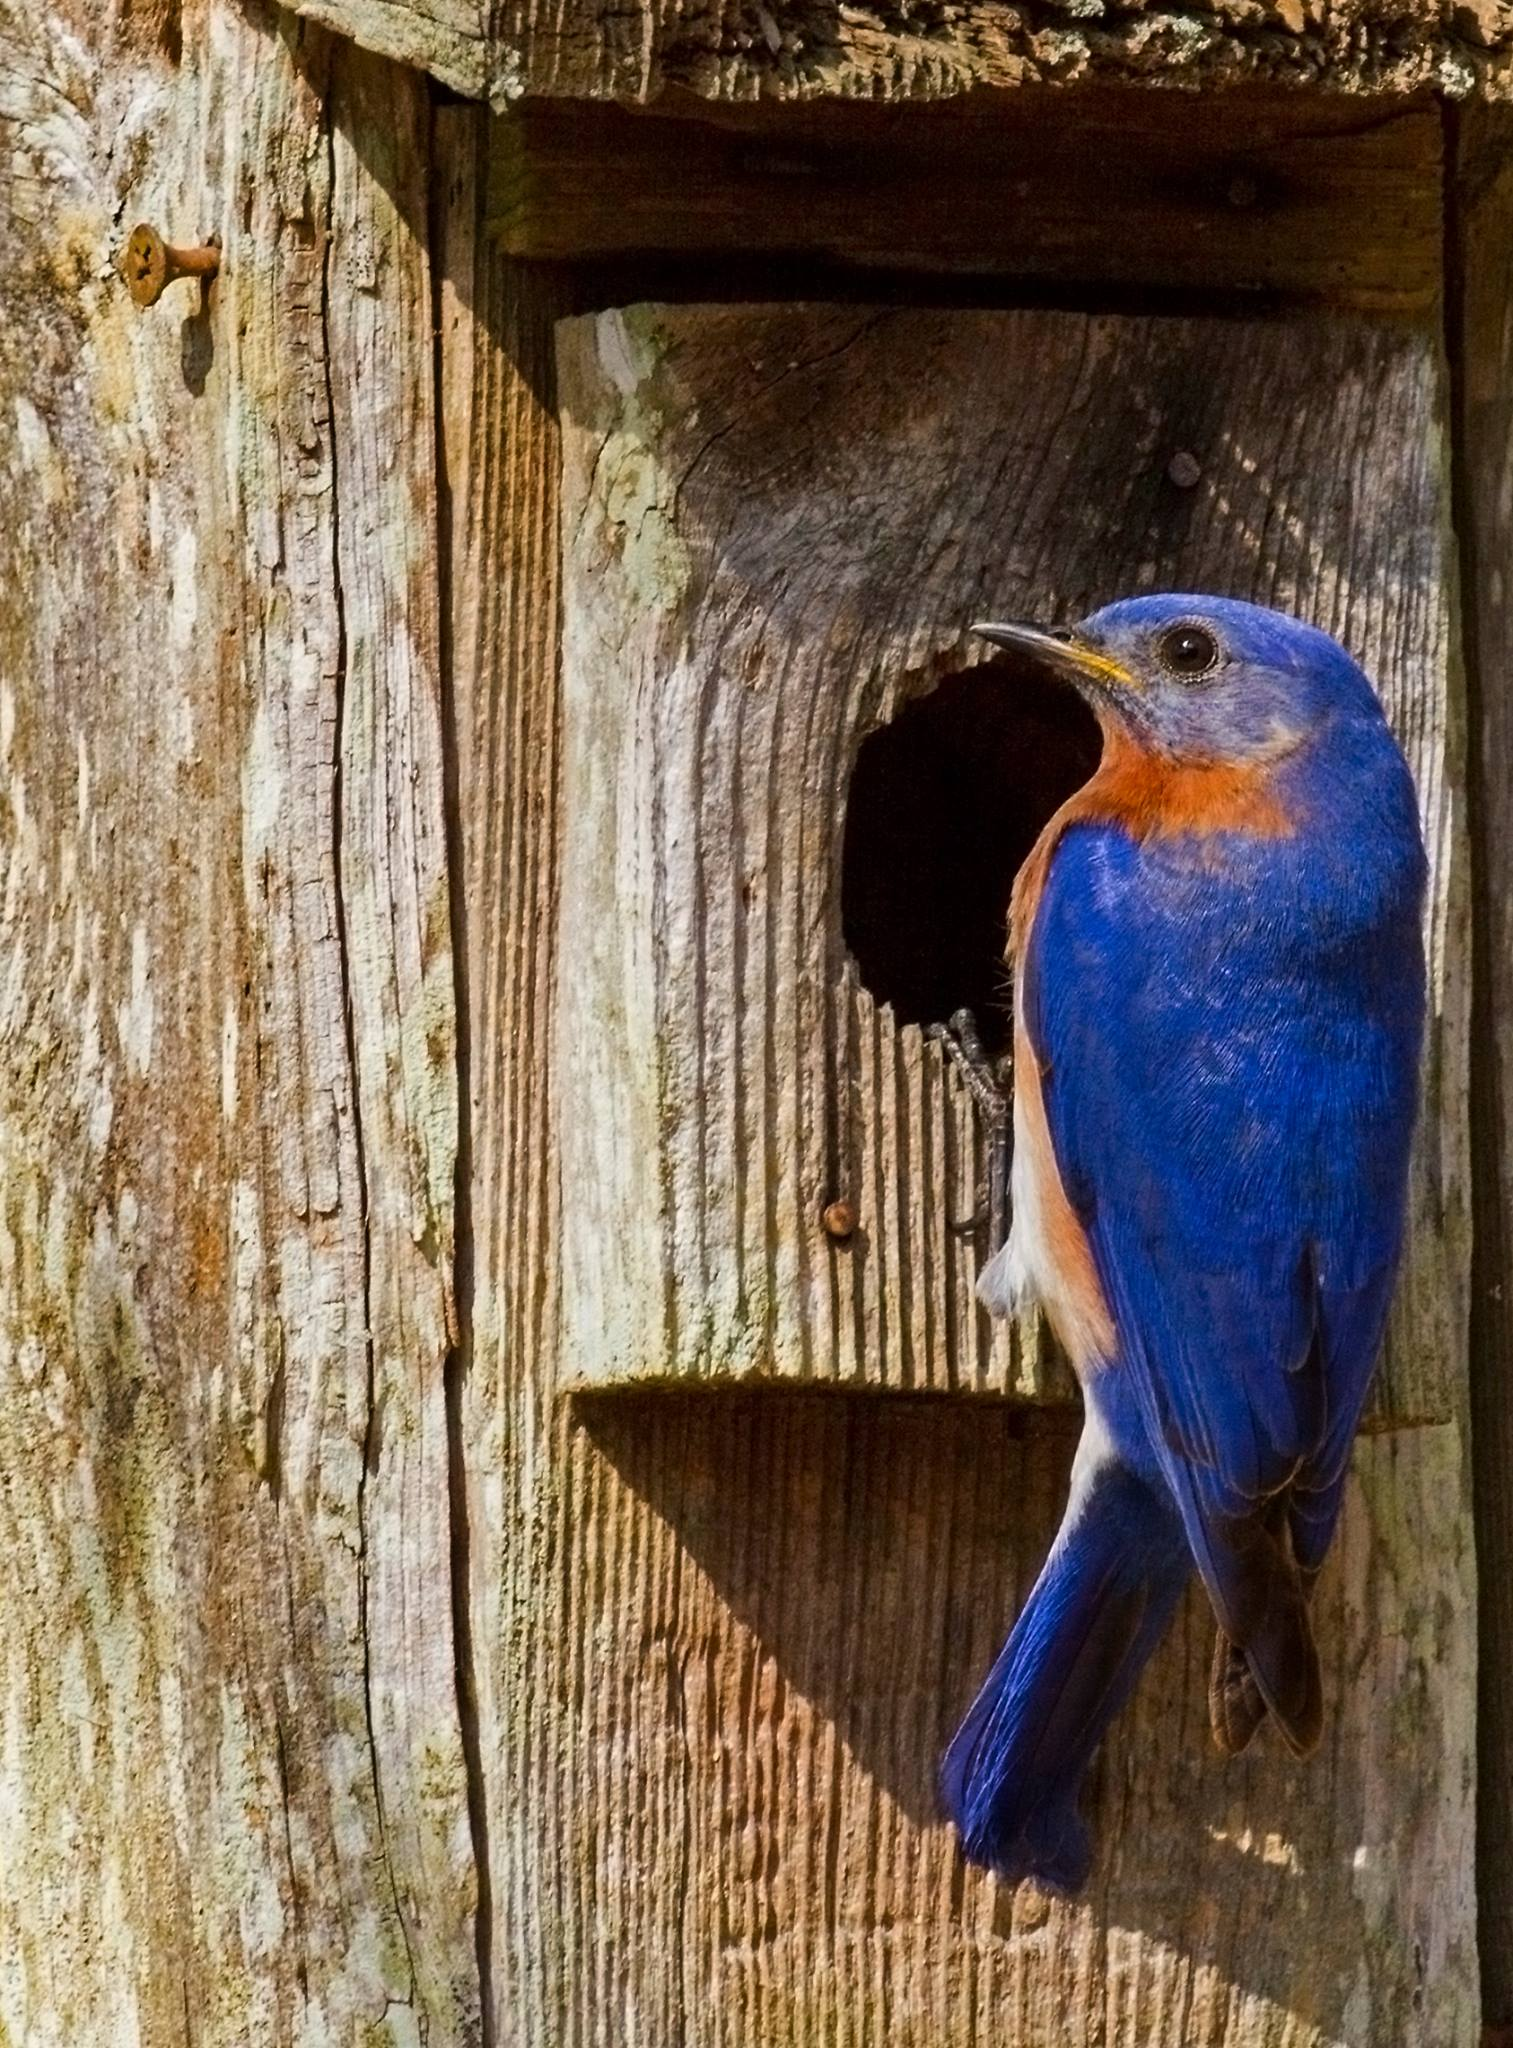 Bluebird Image and Bluebird house